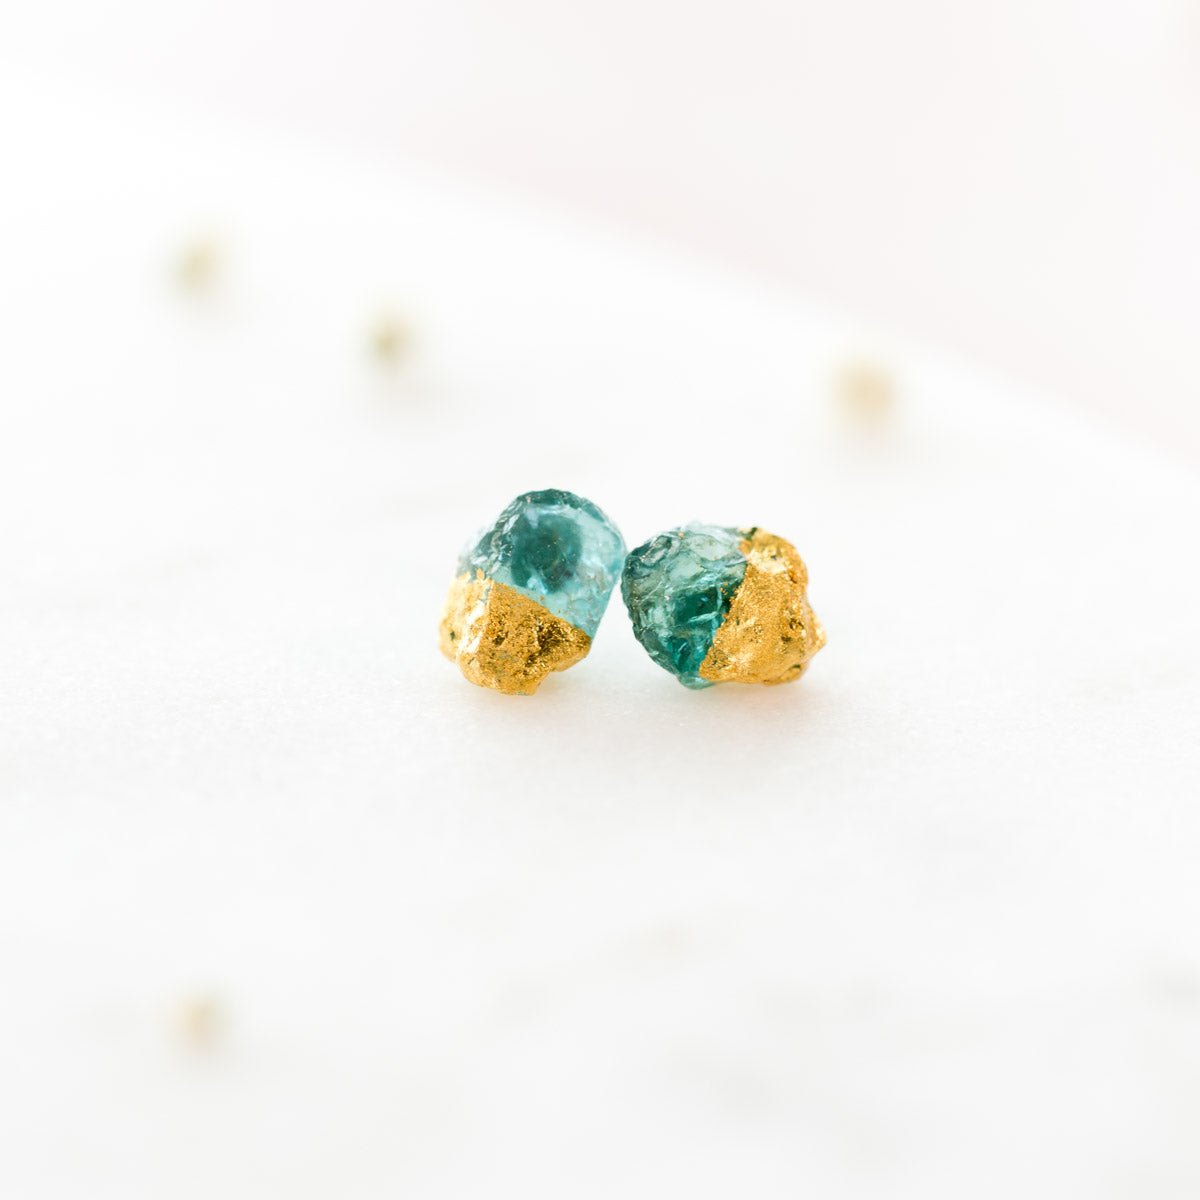 Apatite Earrings, Raw Apatite Earrings, Gold Dipped Apatite Earrings, Gold crystal Earrings, Natural gemstone Earrings, apatite Stud Earrings, Gemstone Earrings, Liz.Beth Jewelry Co.